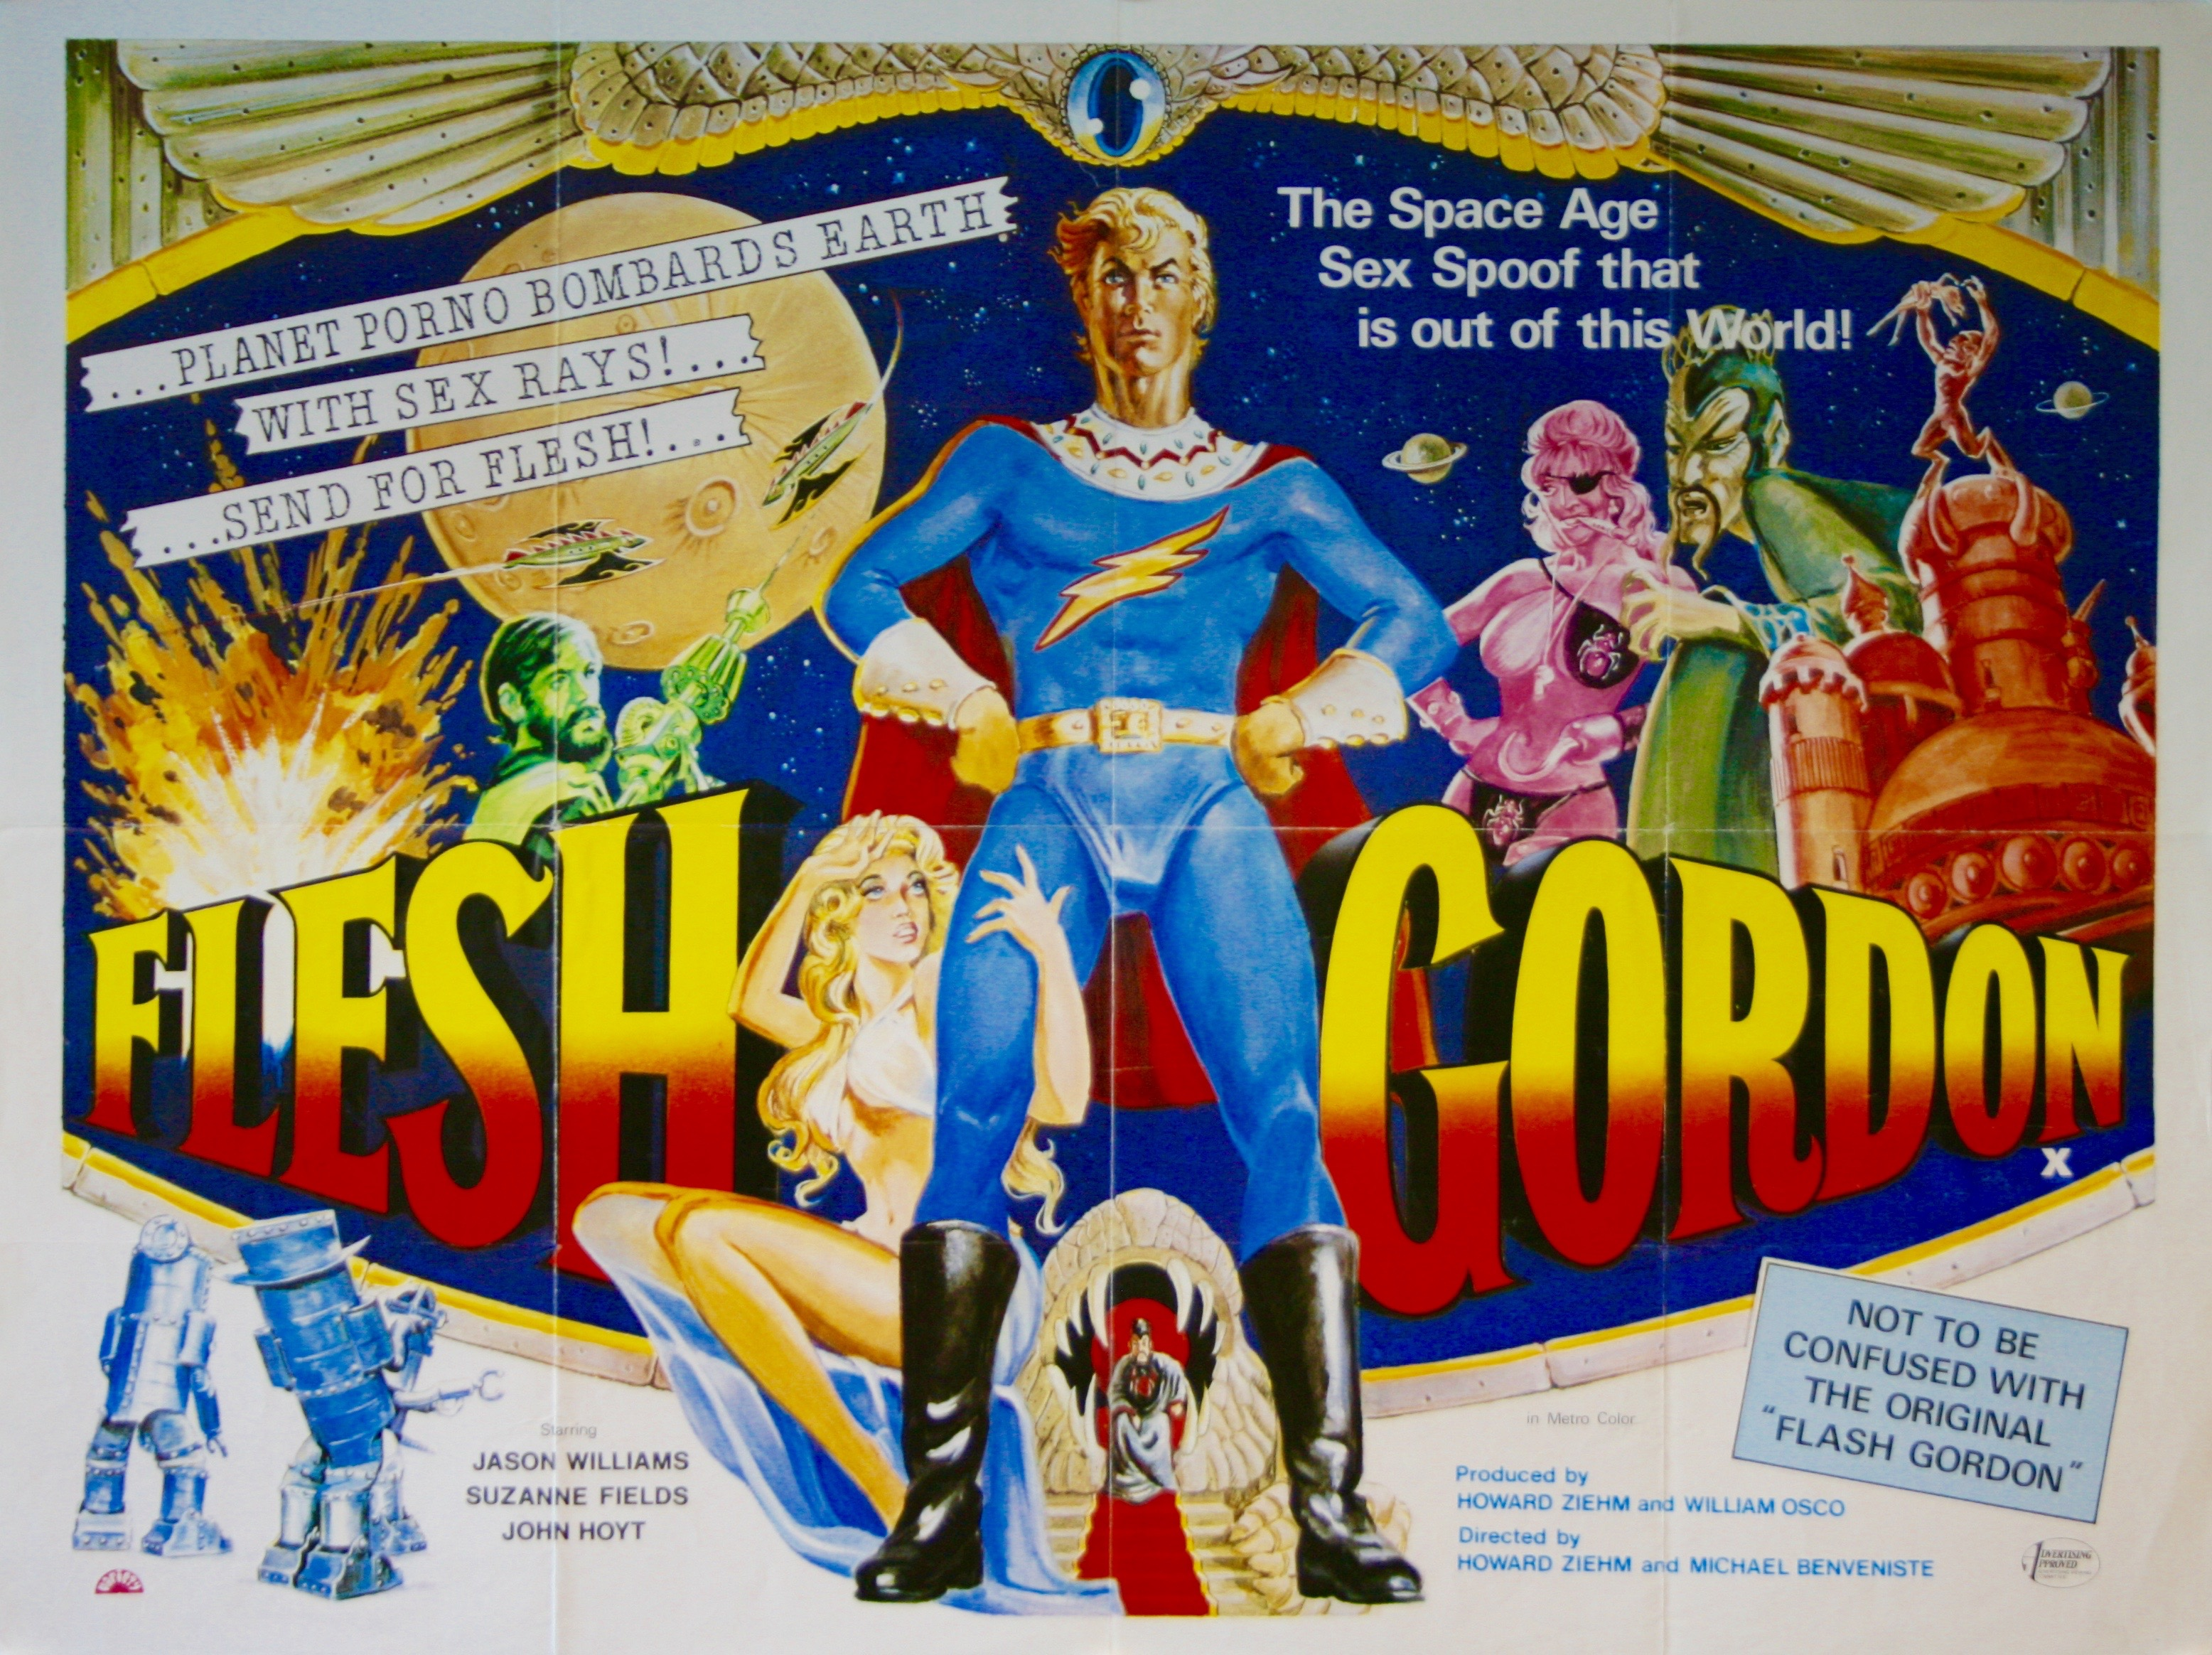 Flesh Gordon.